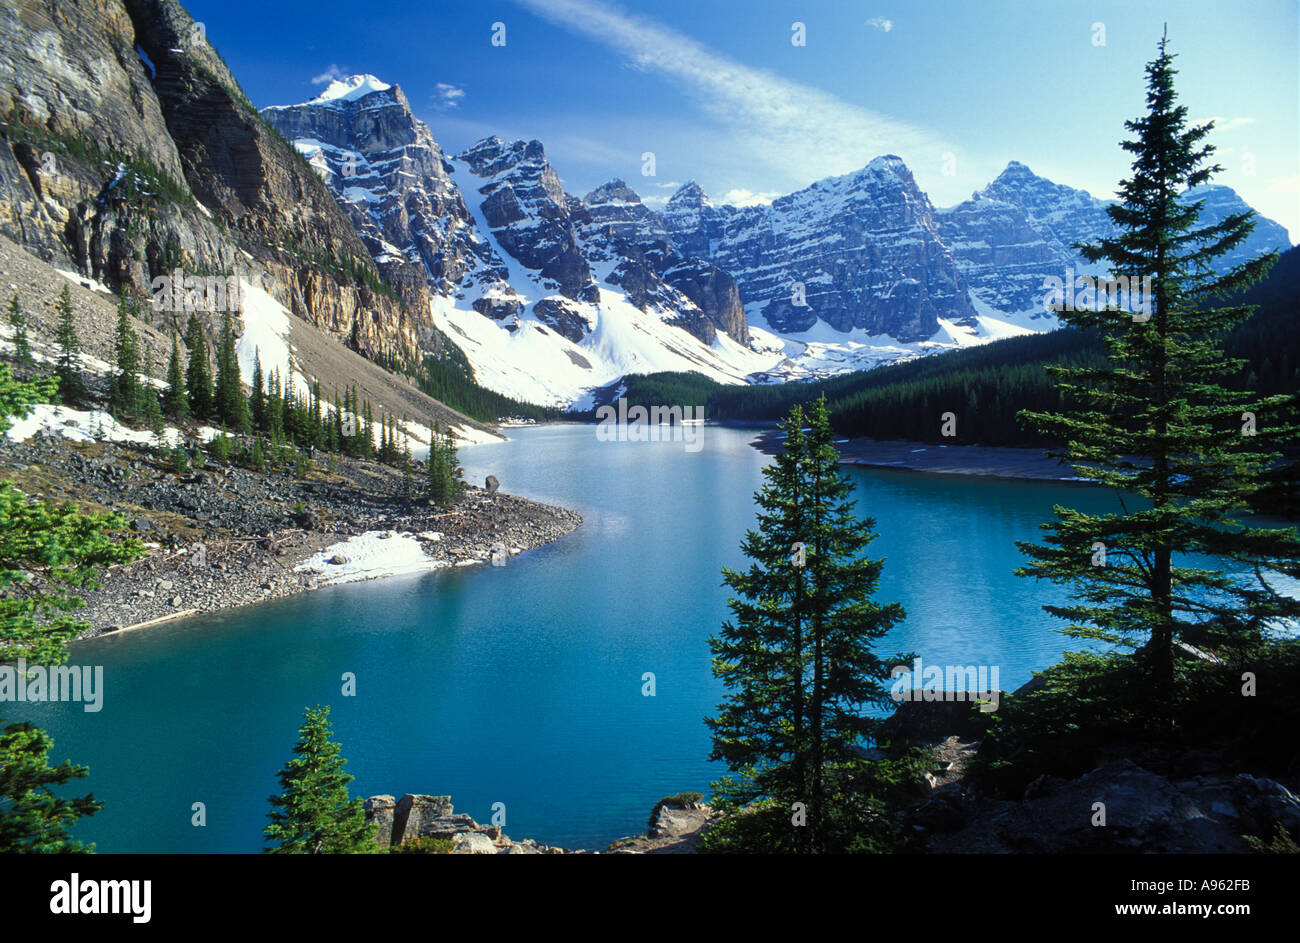 Morraine Lake Banff National Park Alberta Canada - Stock Image